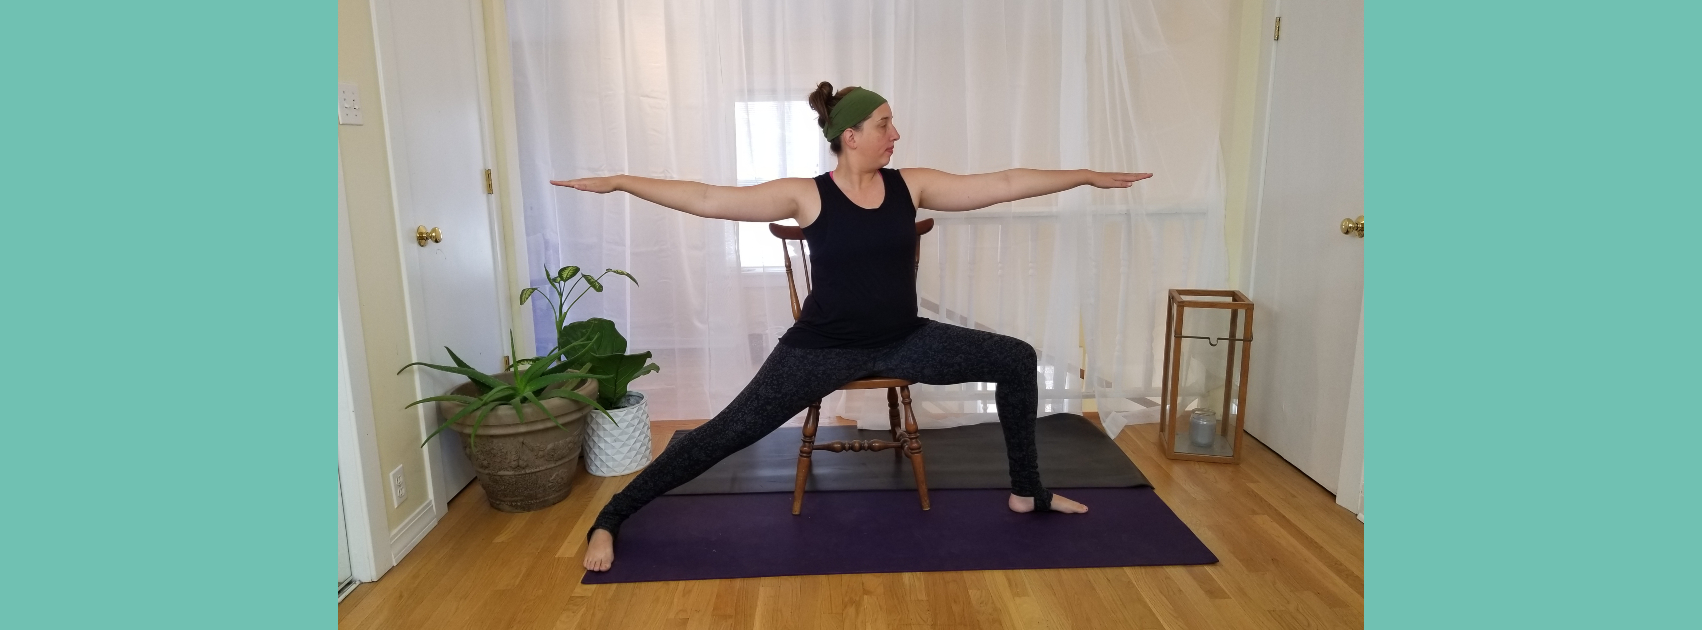 A Ten Minute Chair Yoga Sequence for Beginners